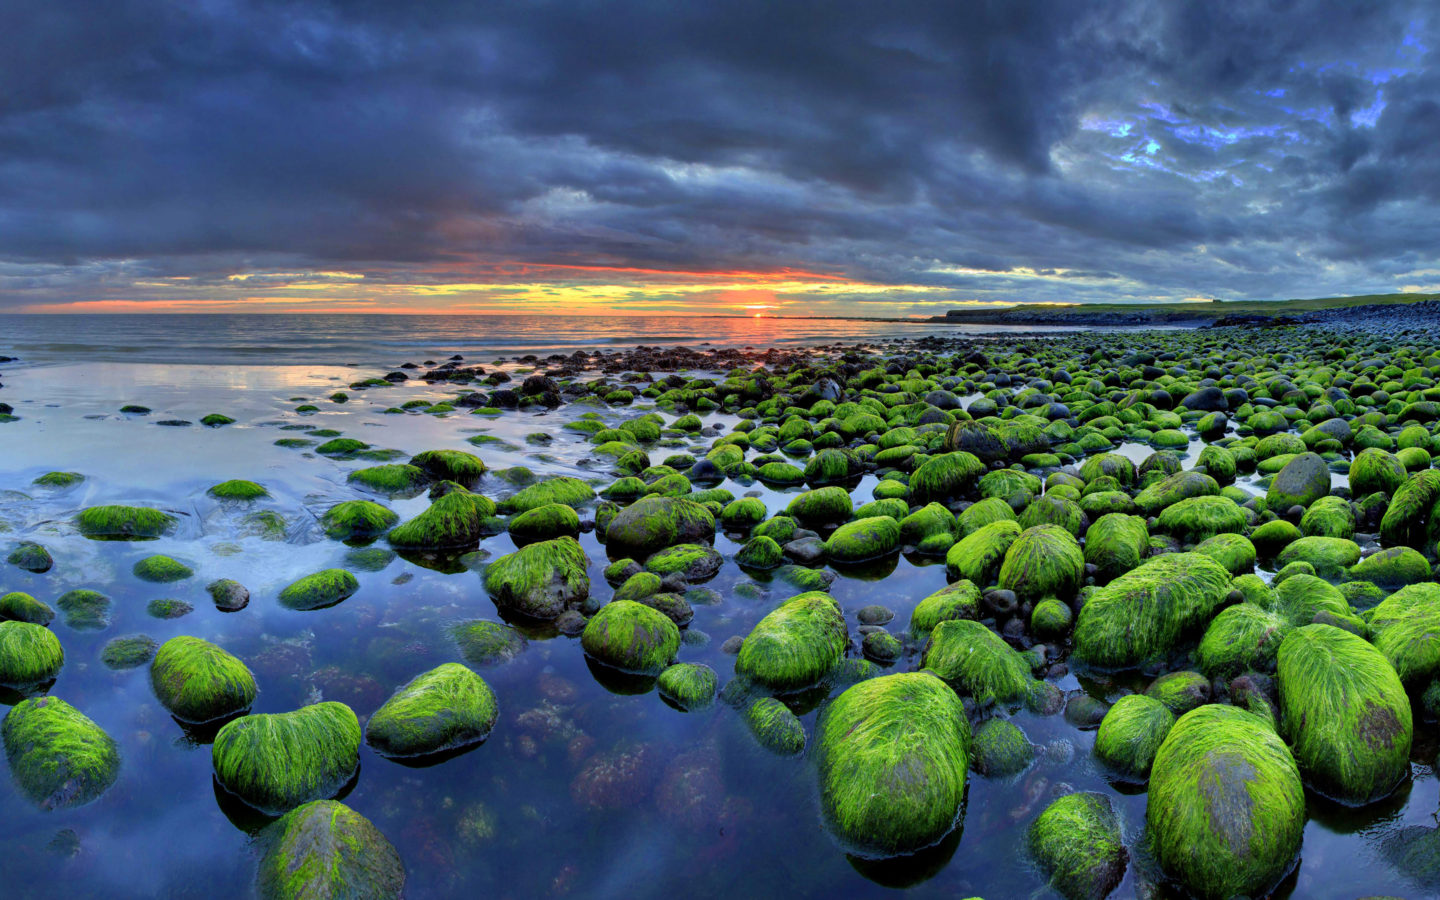 Wallpapers Cars Disney Hd Iceland Wallpaper Hd Mossy Rocks Sunset Beach Nature